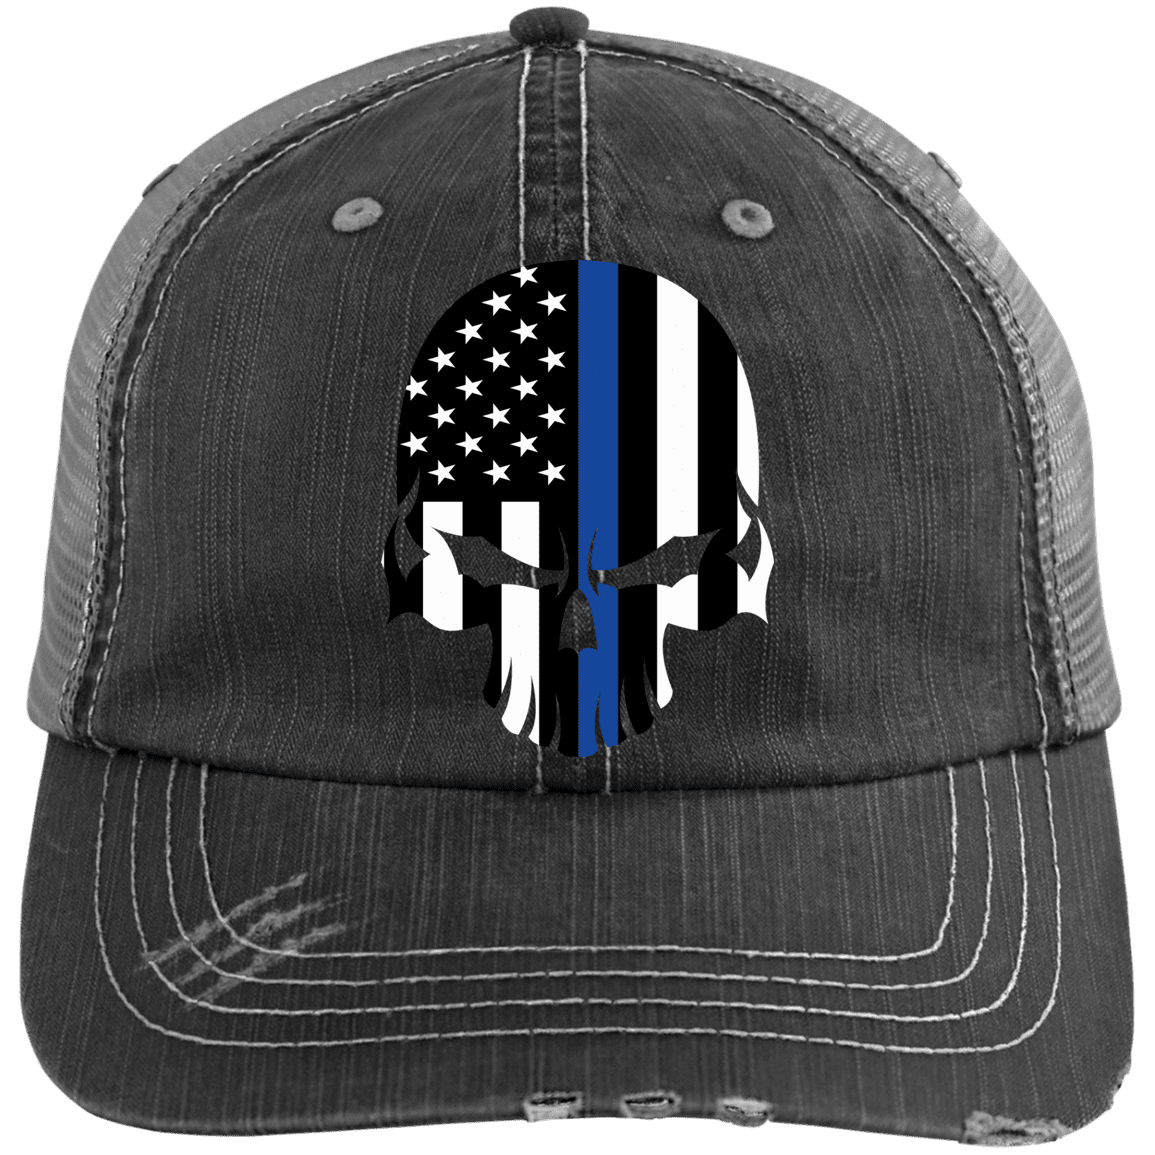 Thin Blue Line Bad Skull Distressed Trucker Cap